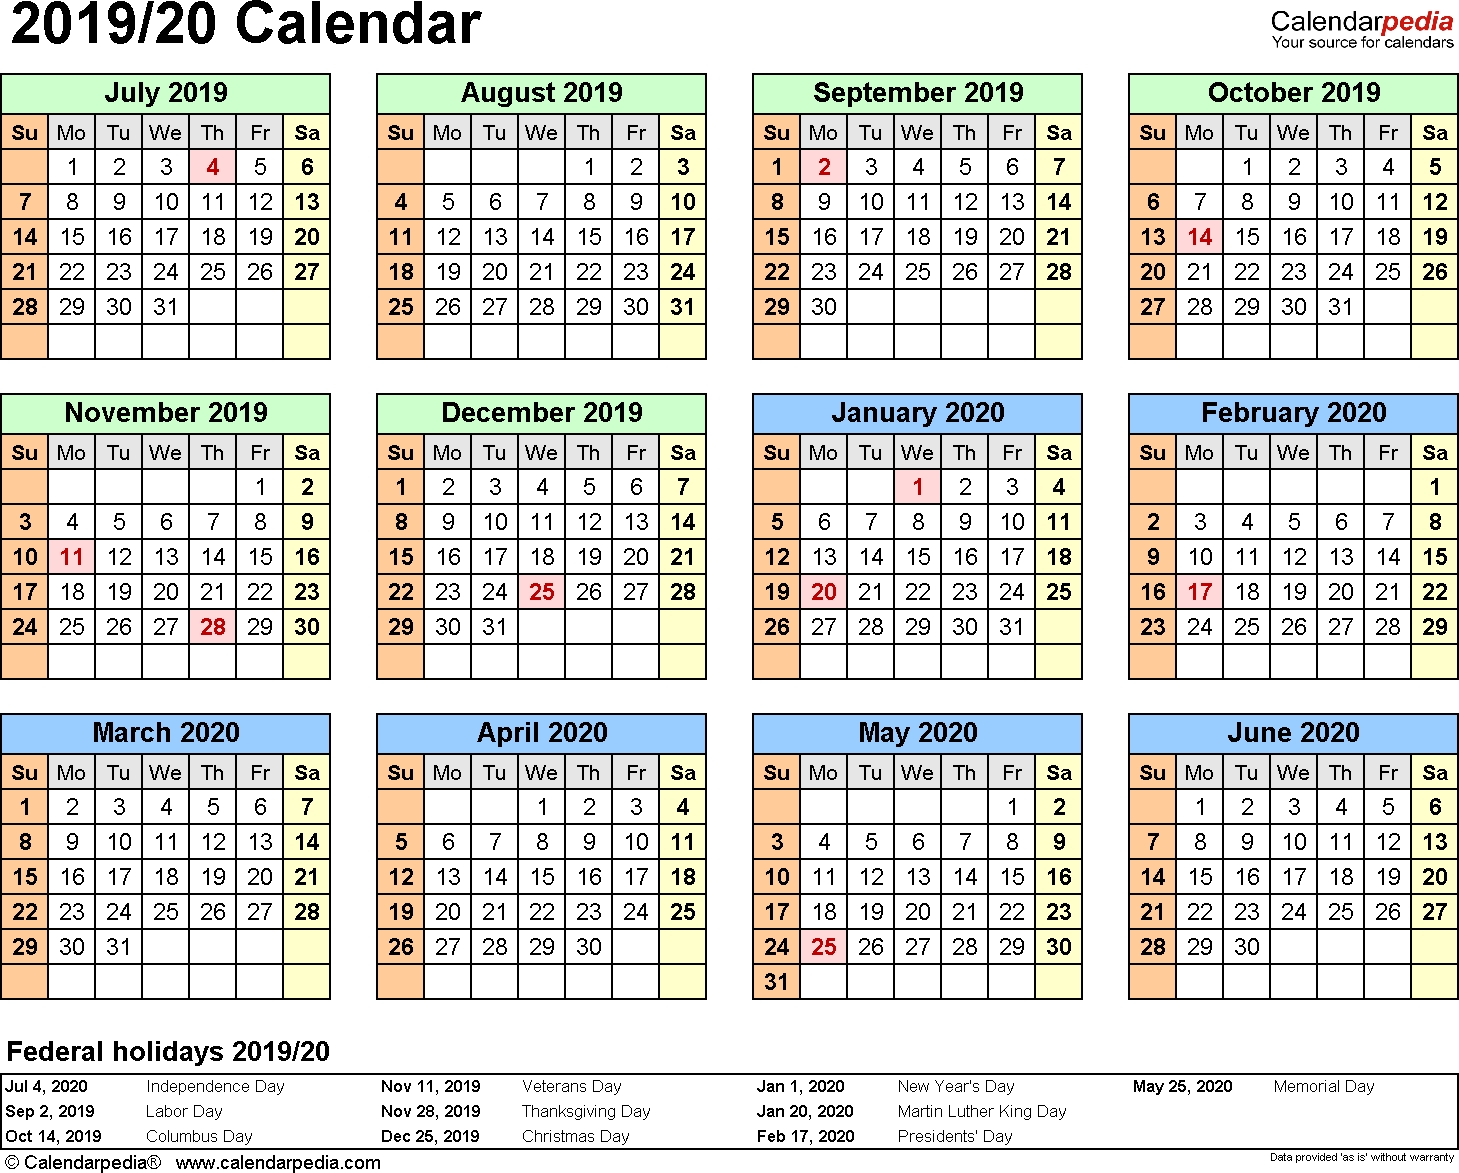 Split Year Calendar 2019/20 (July To June) - Pdf Templates within July 2019 To June 2020 Calendar